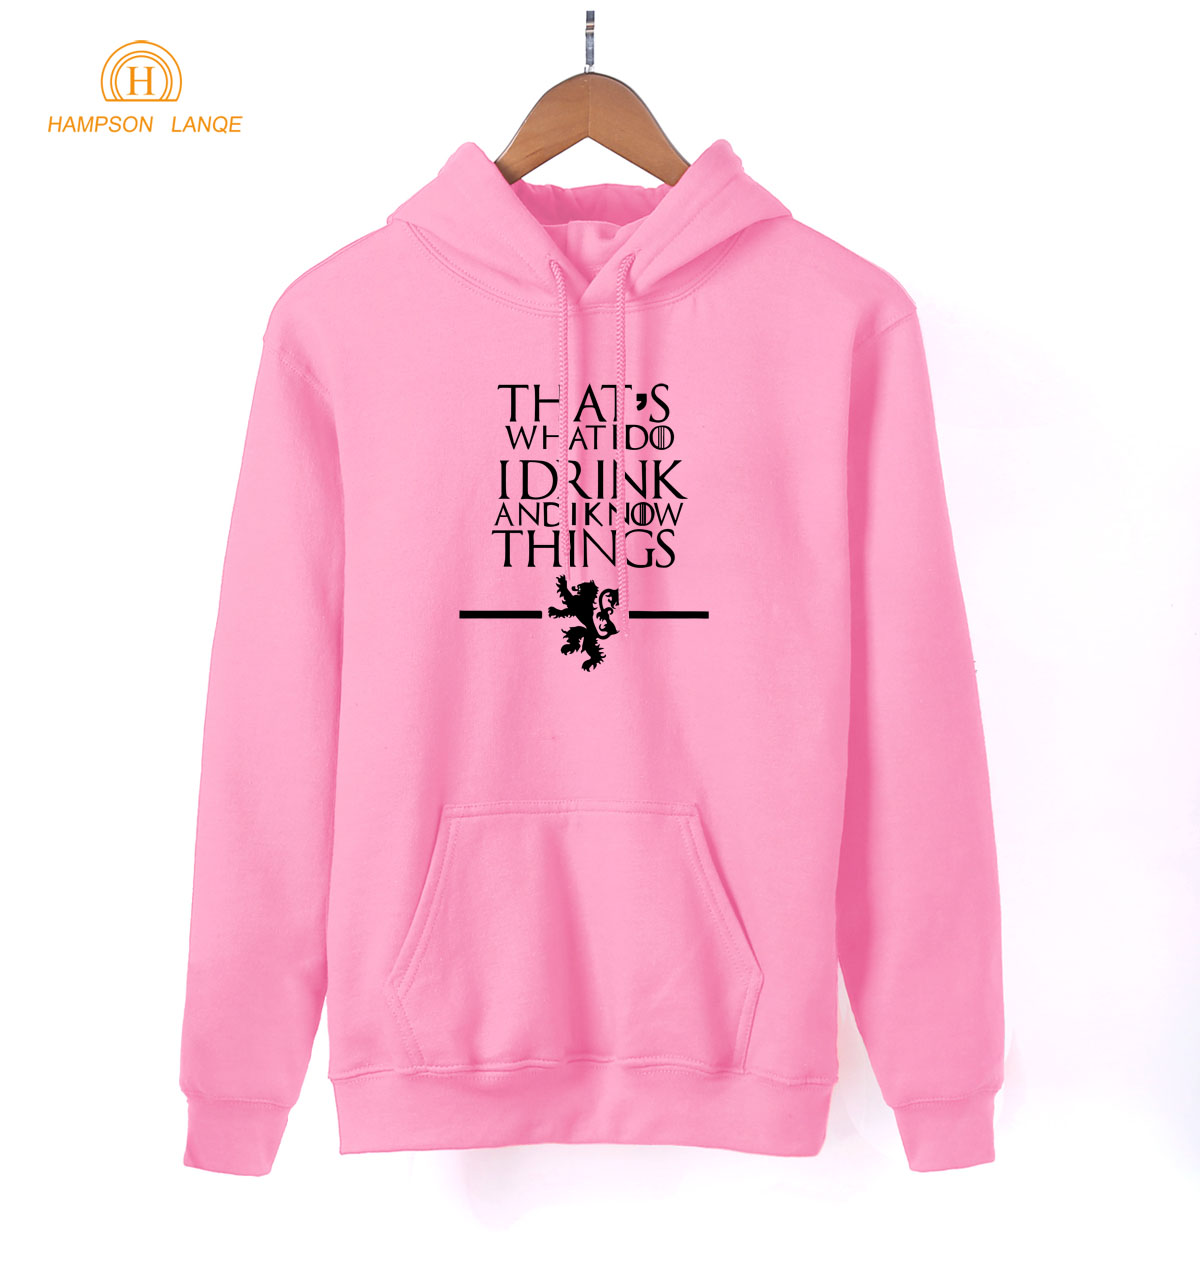 Game Of Thrones Lannister That's What I Do , I Drink and I know Things Print Movie Hoodies 2020 Spring Hot Sale Sweatshirt Women image